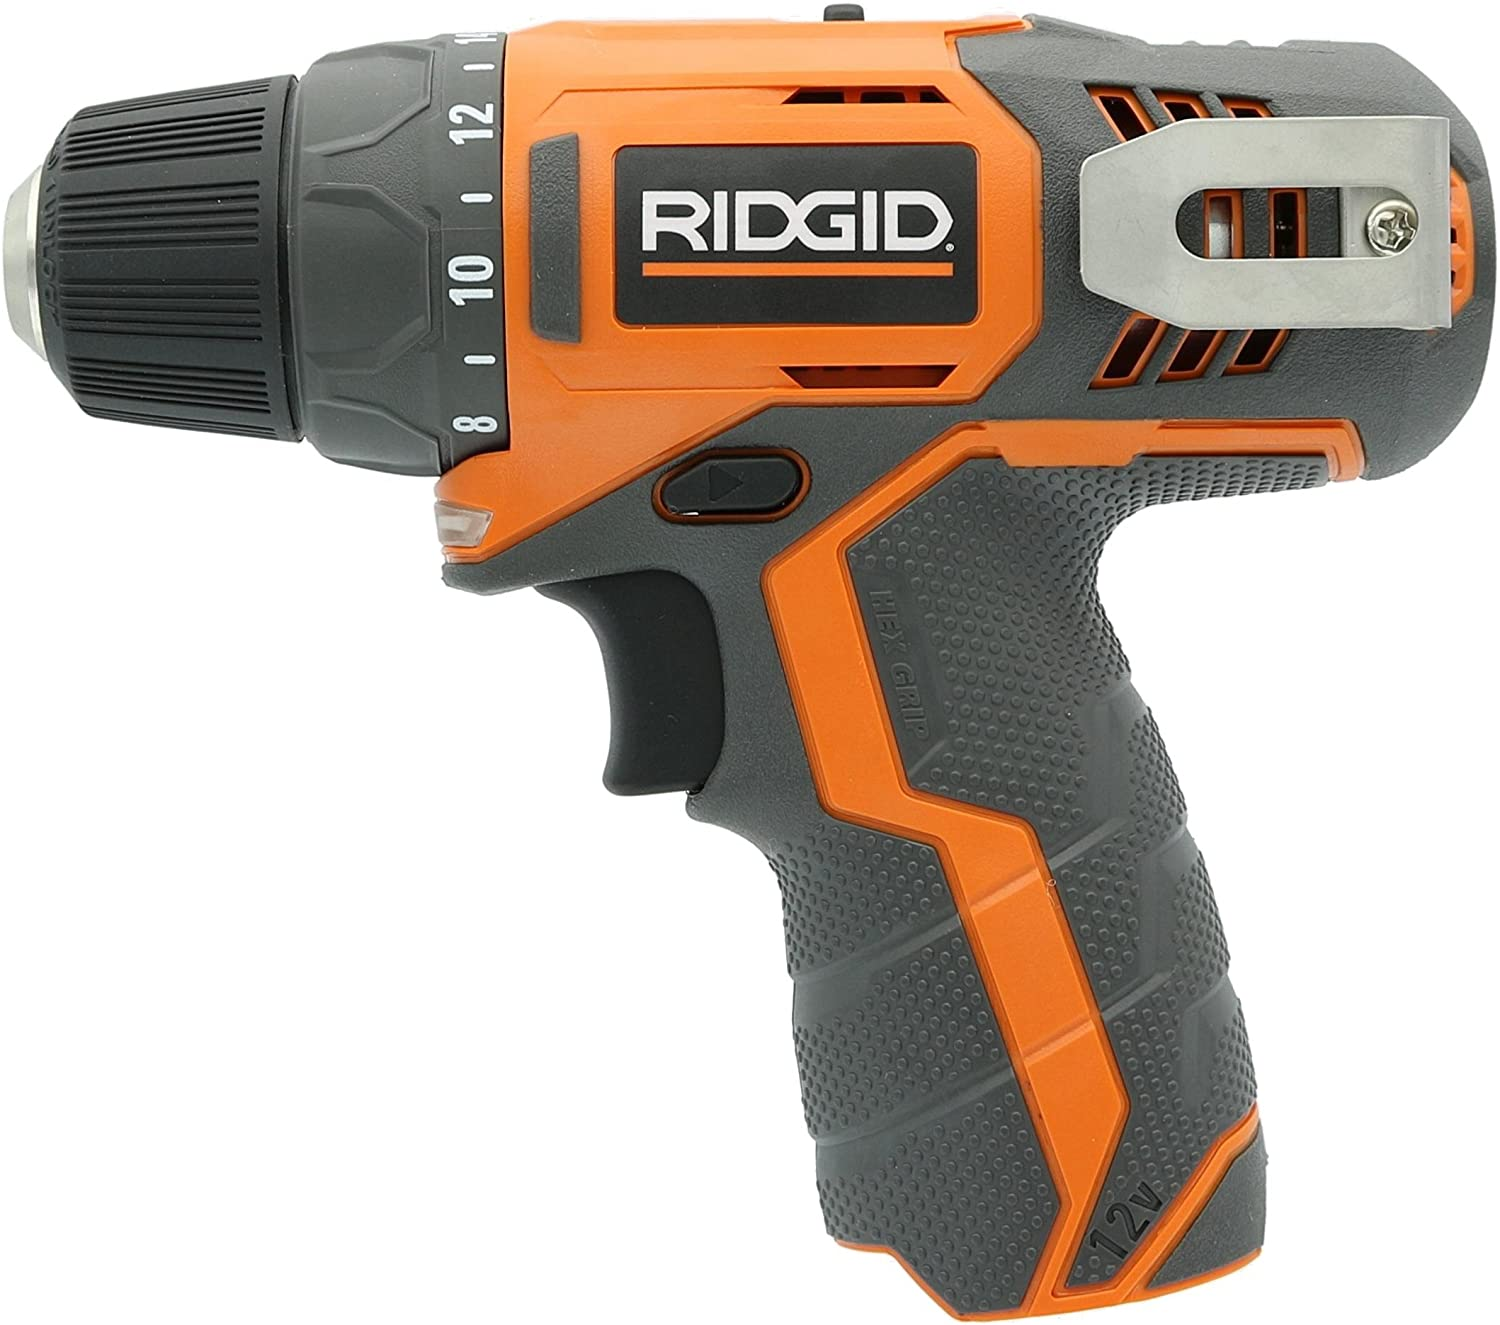 Ridgid R82005 Genuine OEM 3 8 Inch 12V Lithium Ion Brushless and Cordless 300 In-Lbs Drill Driver Battery Not Included, Power Tool Only Renewed